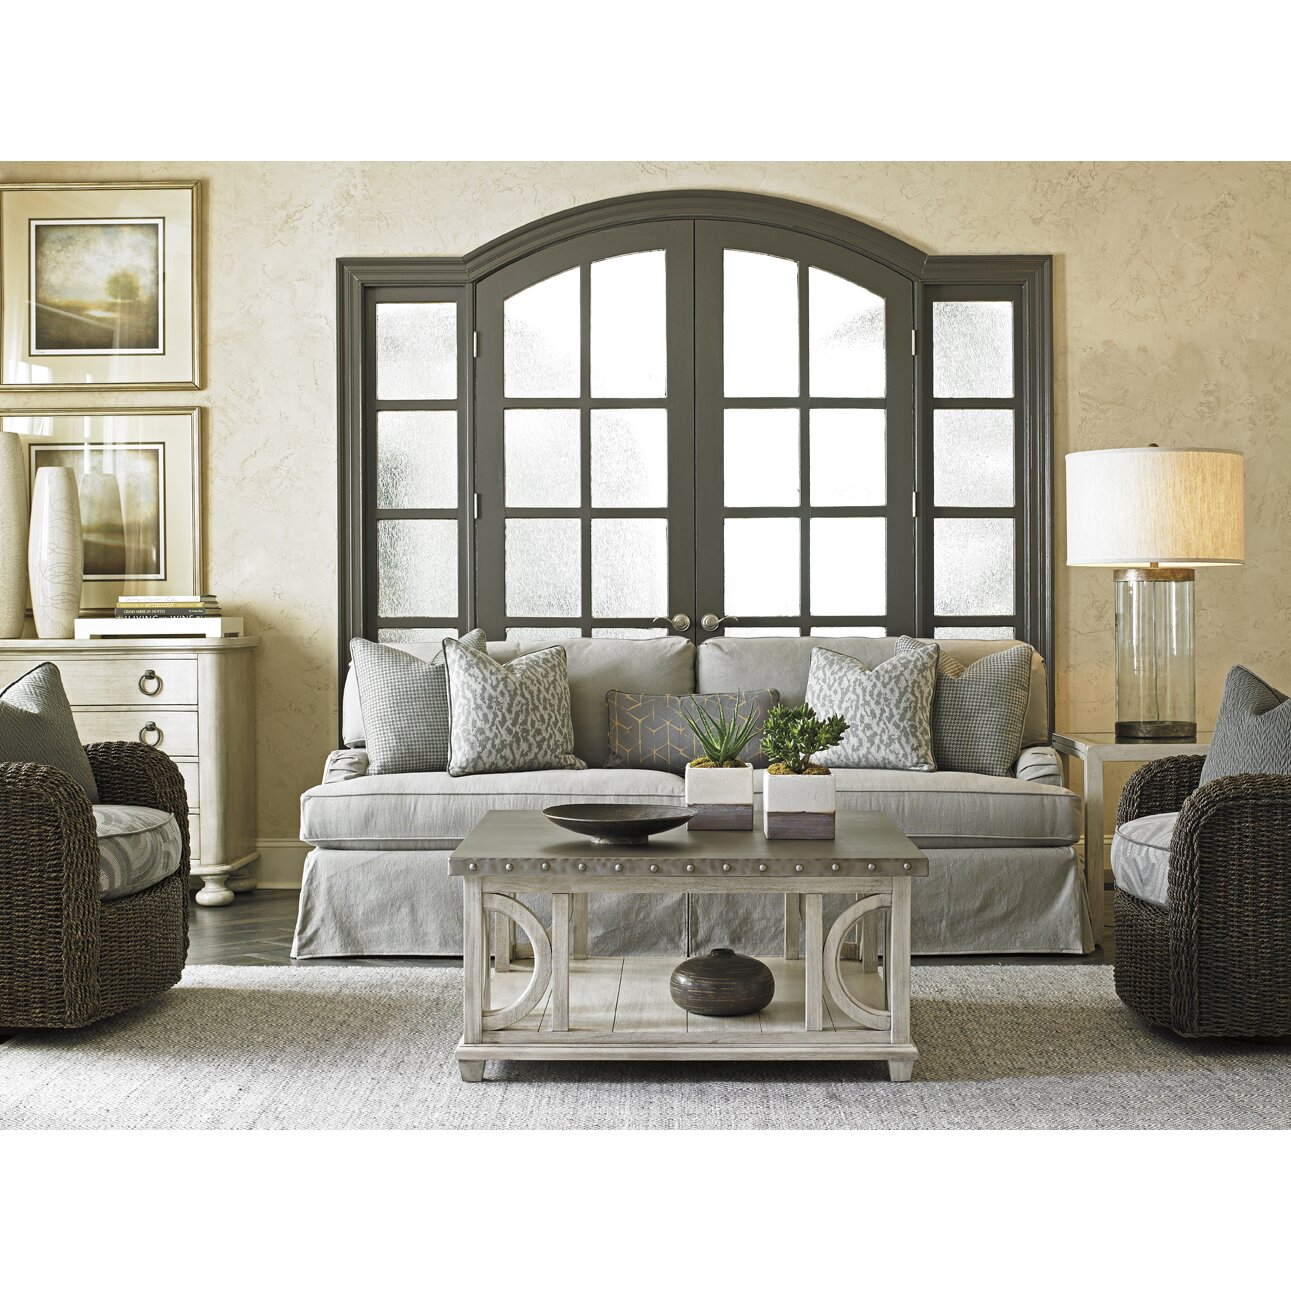 Slipcover Furniture Vancouver: Lexington Oyster Bay Stowe Slipcover Sofa